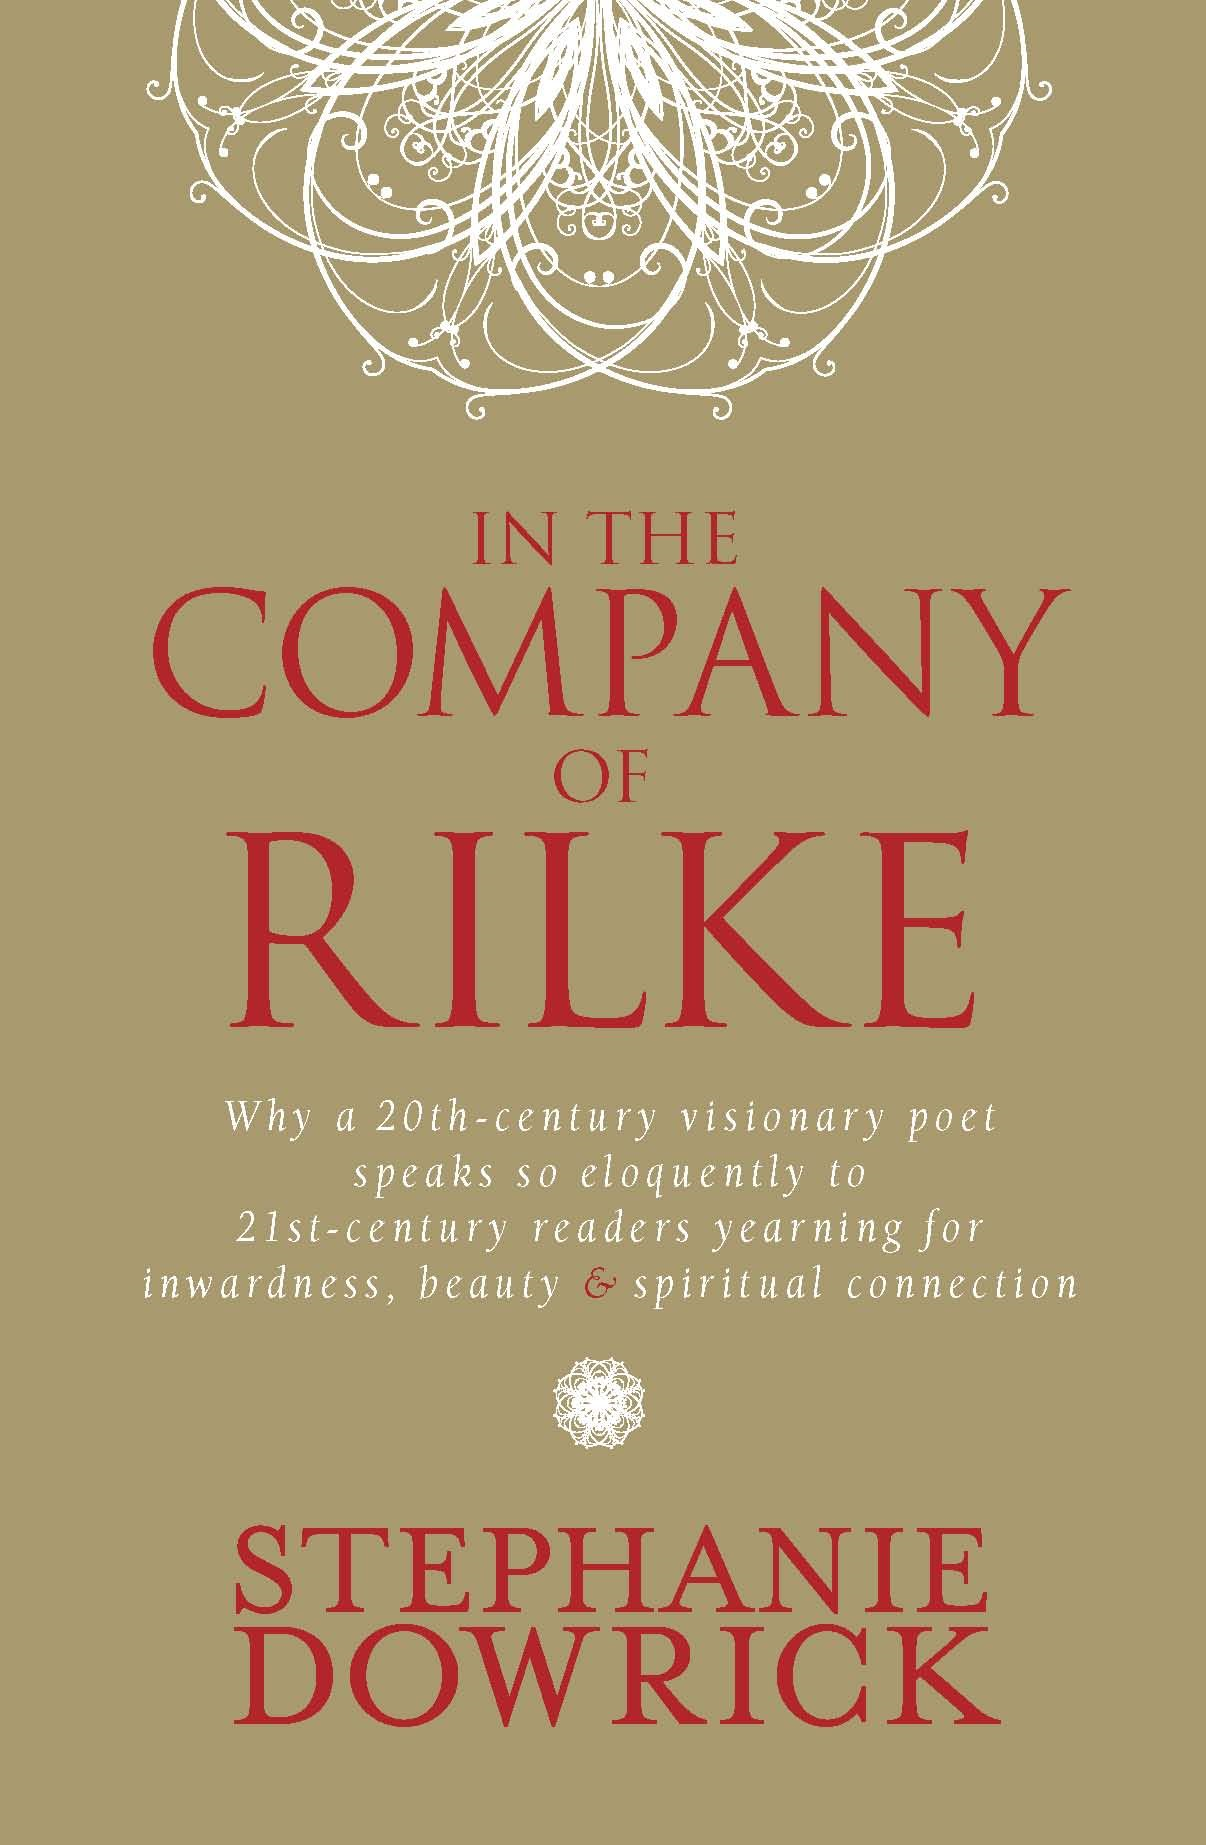 In The Company Of Rilke By: Stephanie Dowrick